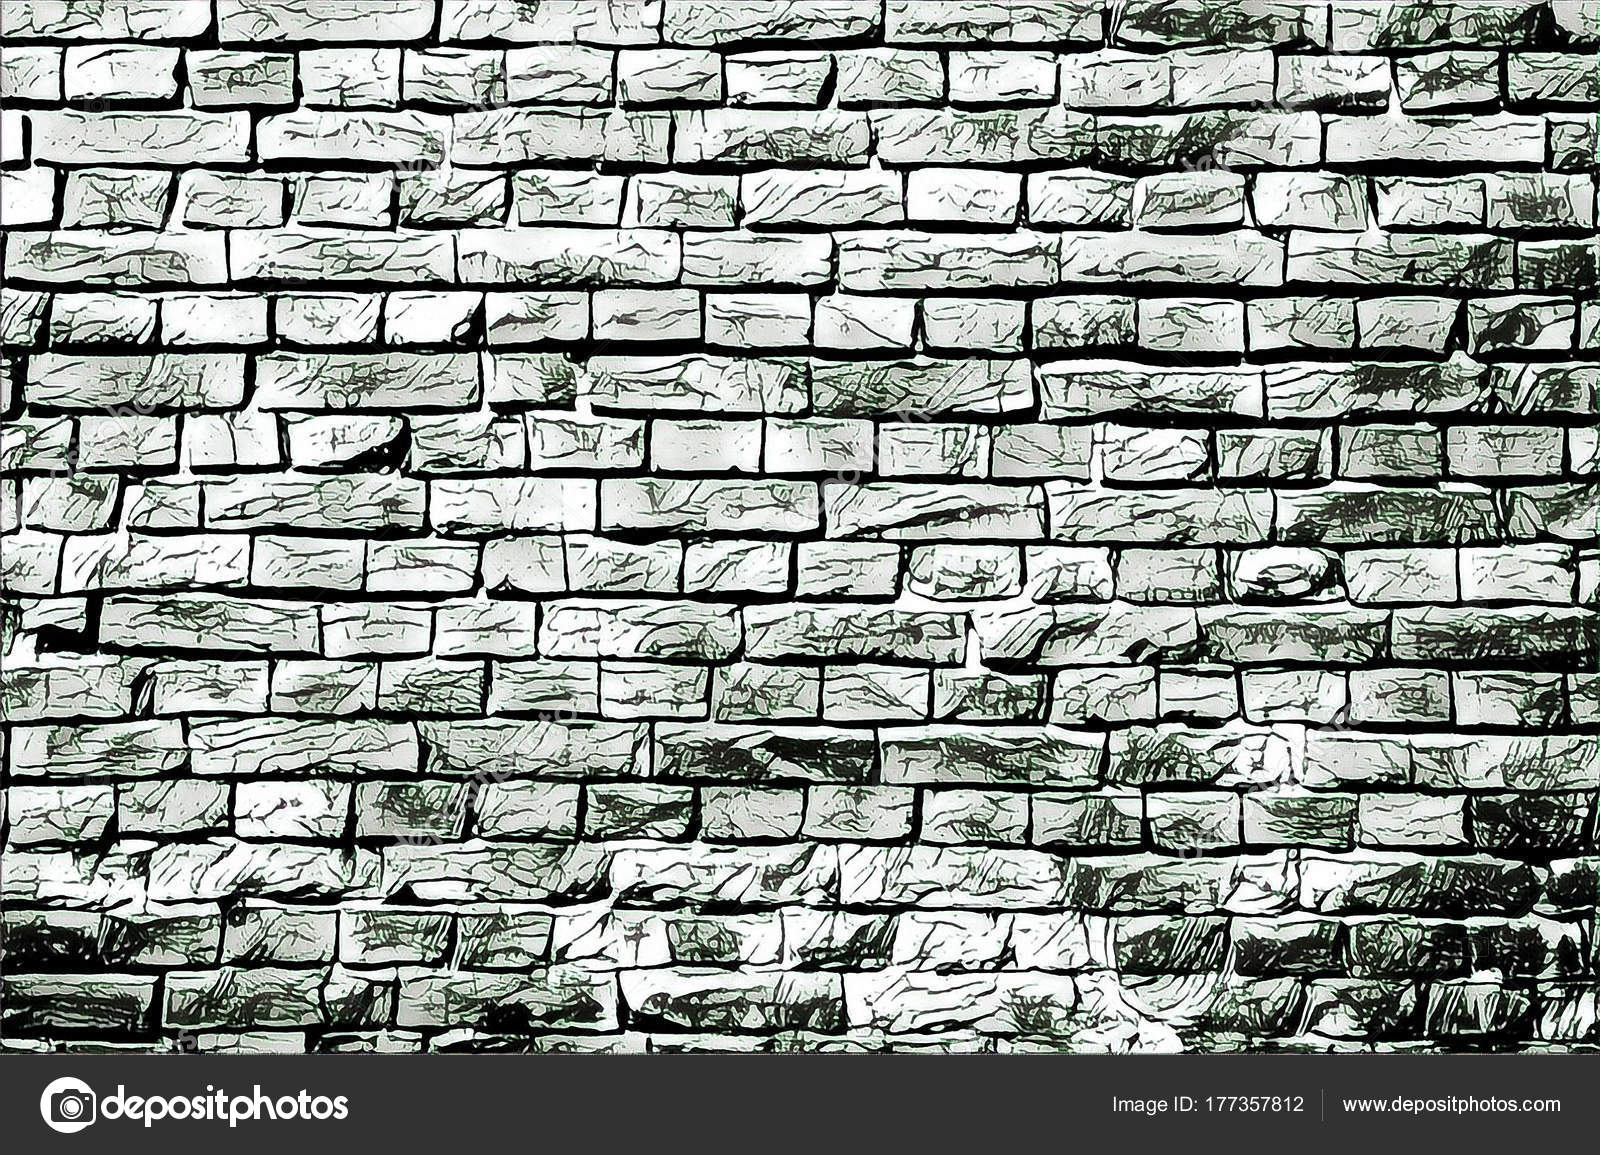 Background Black And White Abstract Wallpaper Design Abstract Background Wallpaper For Custom Illustration Design Stock Photo C Hurricanehank 177357812